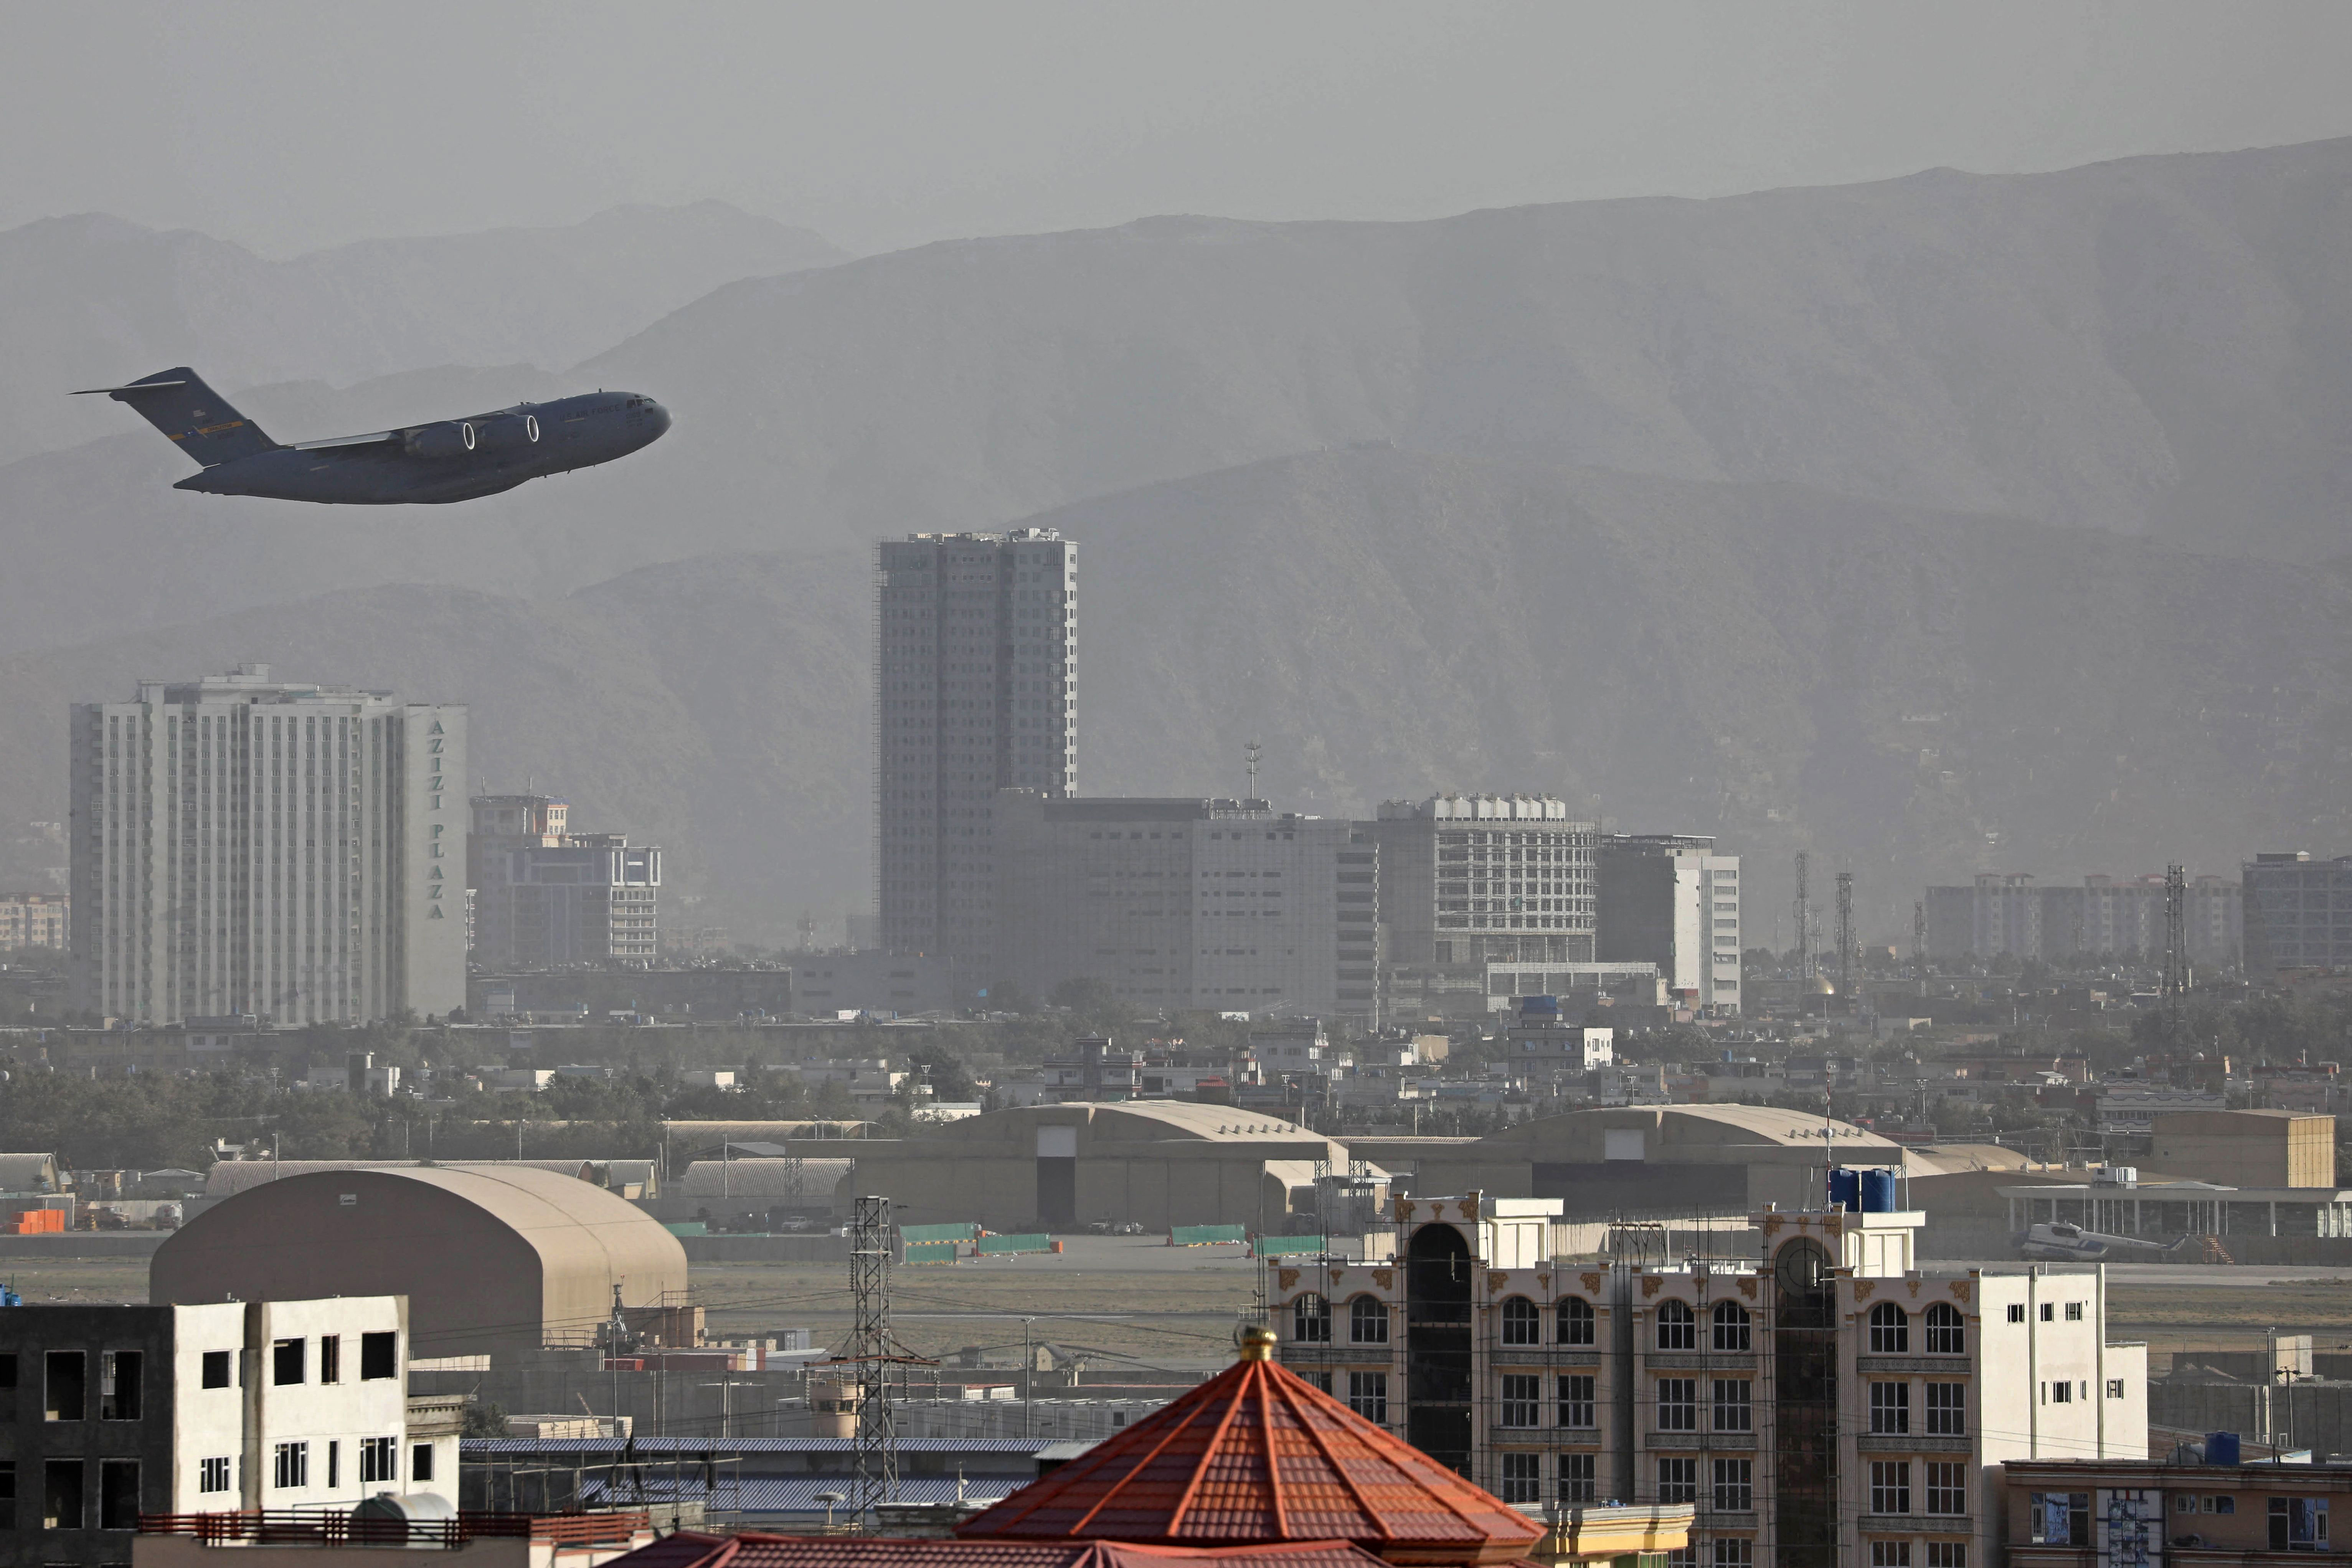 A US Air Force plane takes off from the military airport in Kabul, Afghanistan, on August 27, 2021.